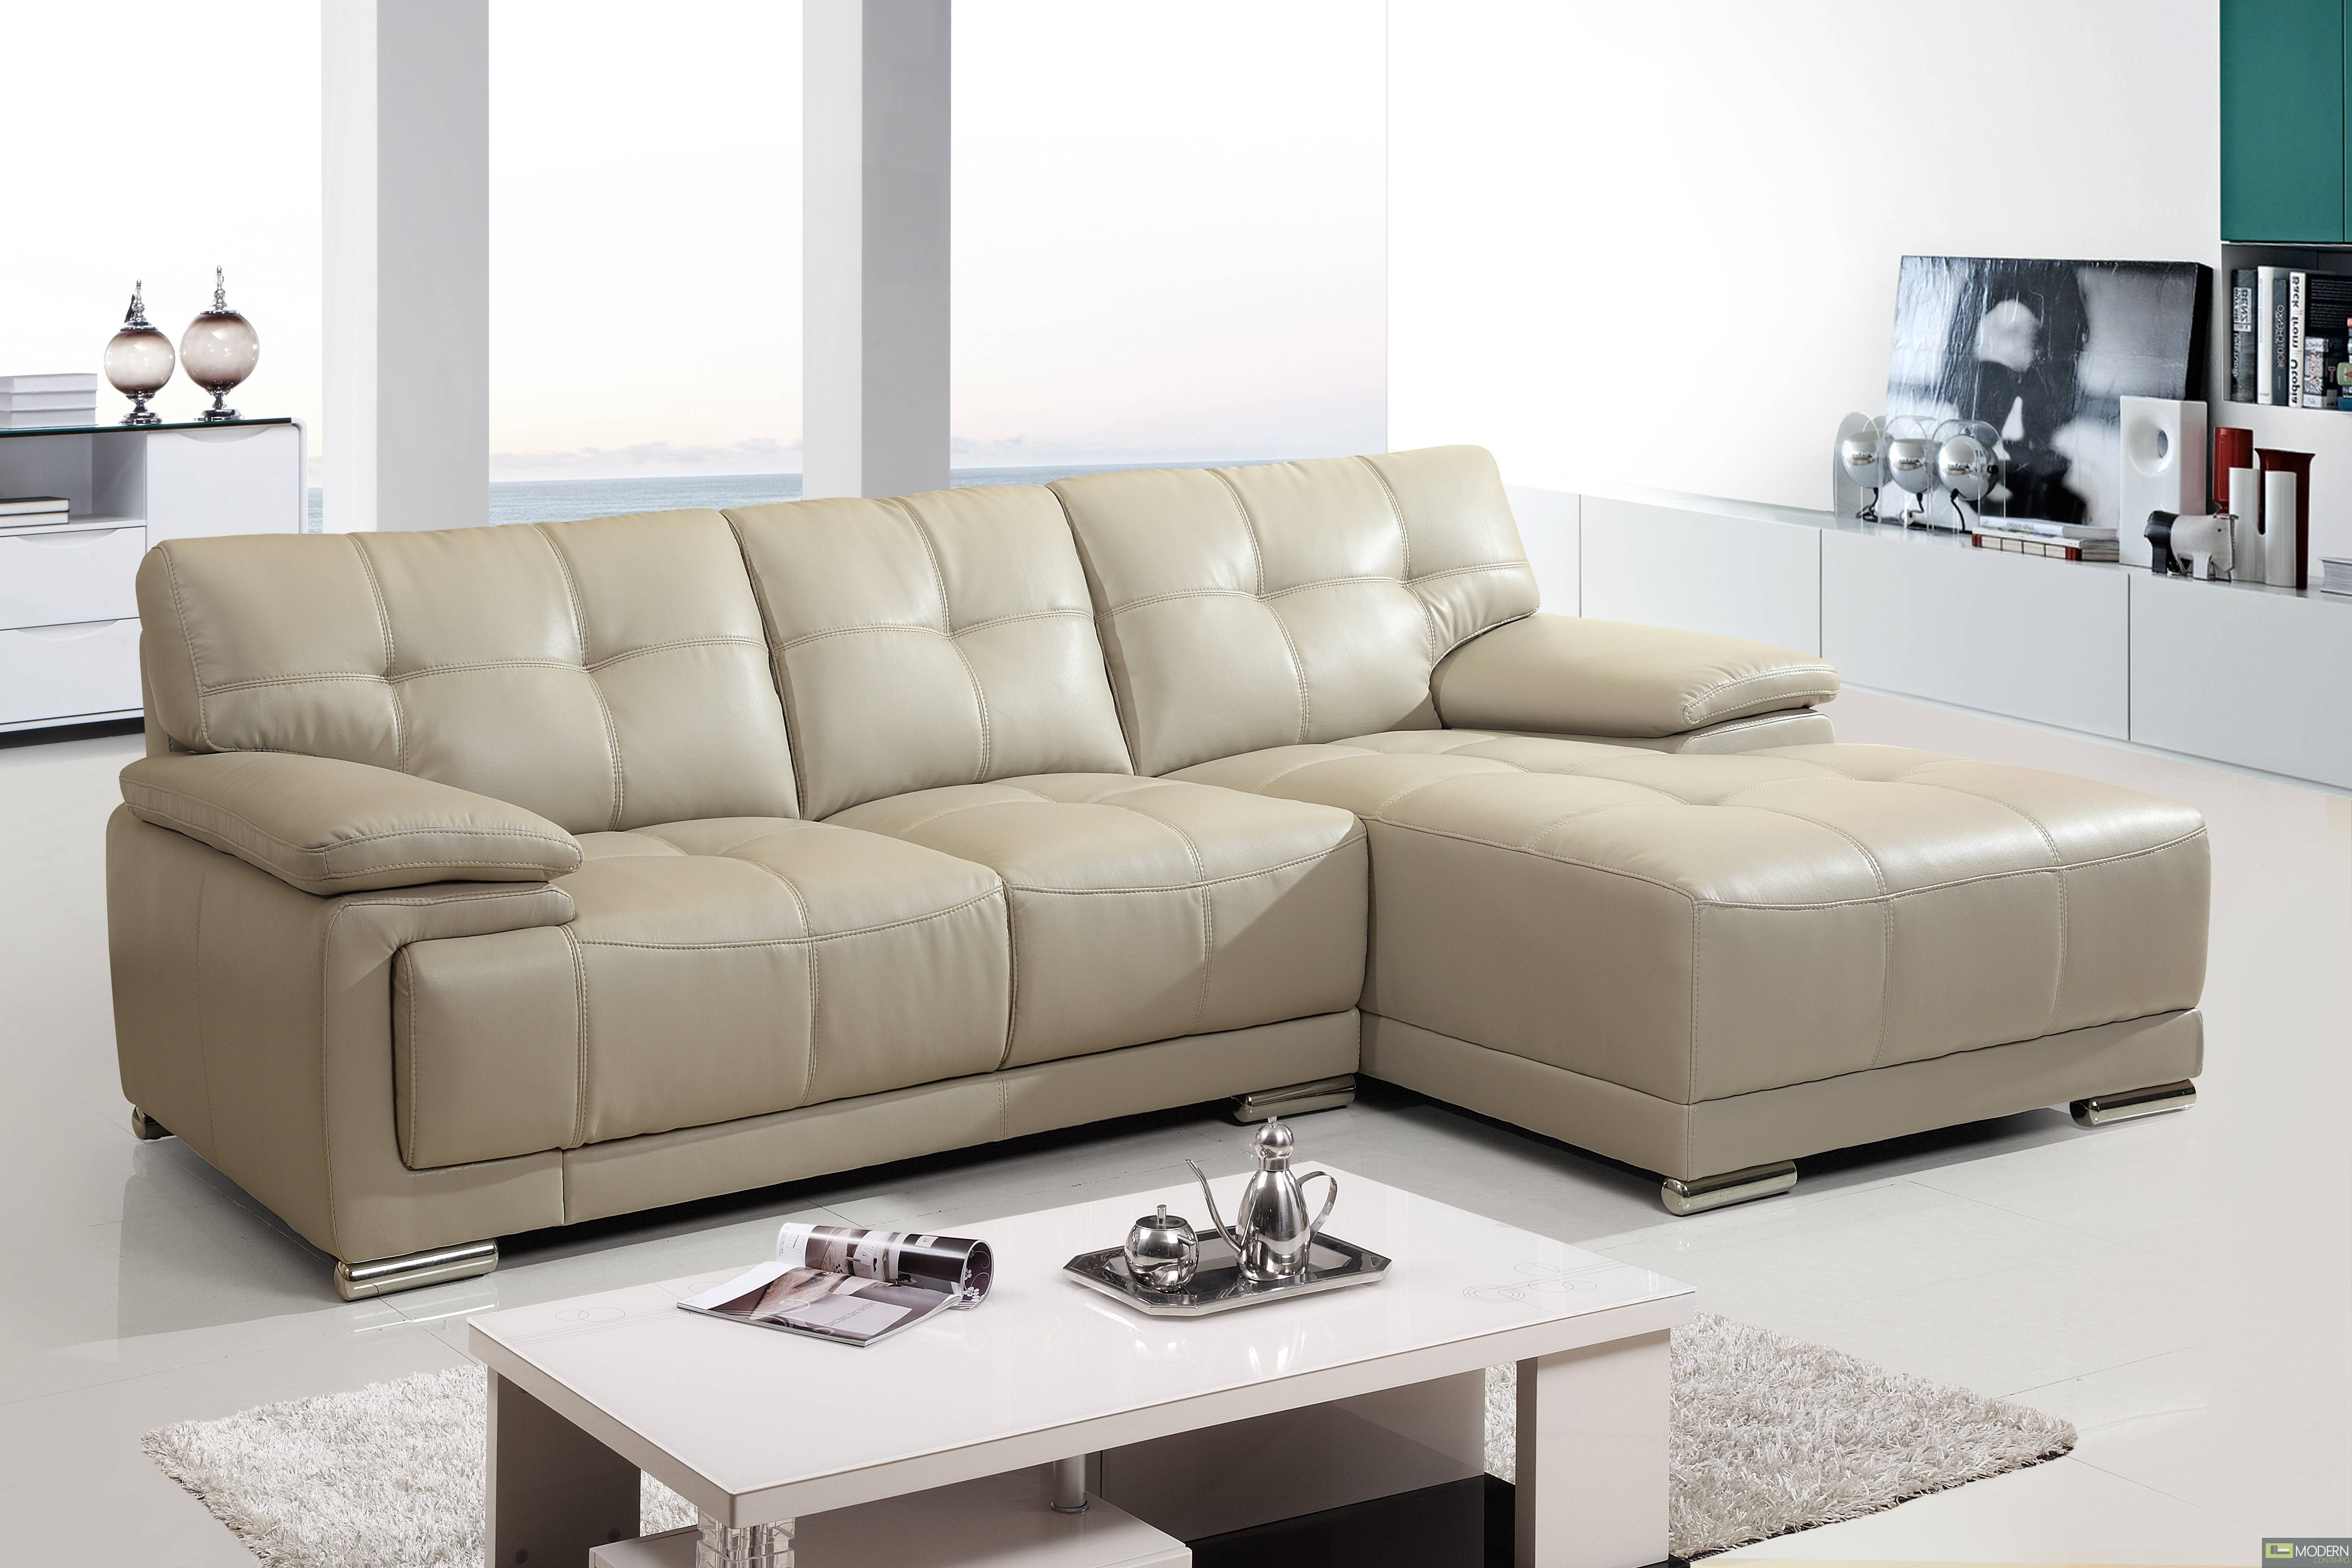 2Pc Modern Leather Sectional Sofa Living Room Couch Set Tbqs8863-4 within Cloud Sectional Sofas (Image 2 of 15)